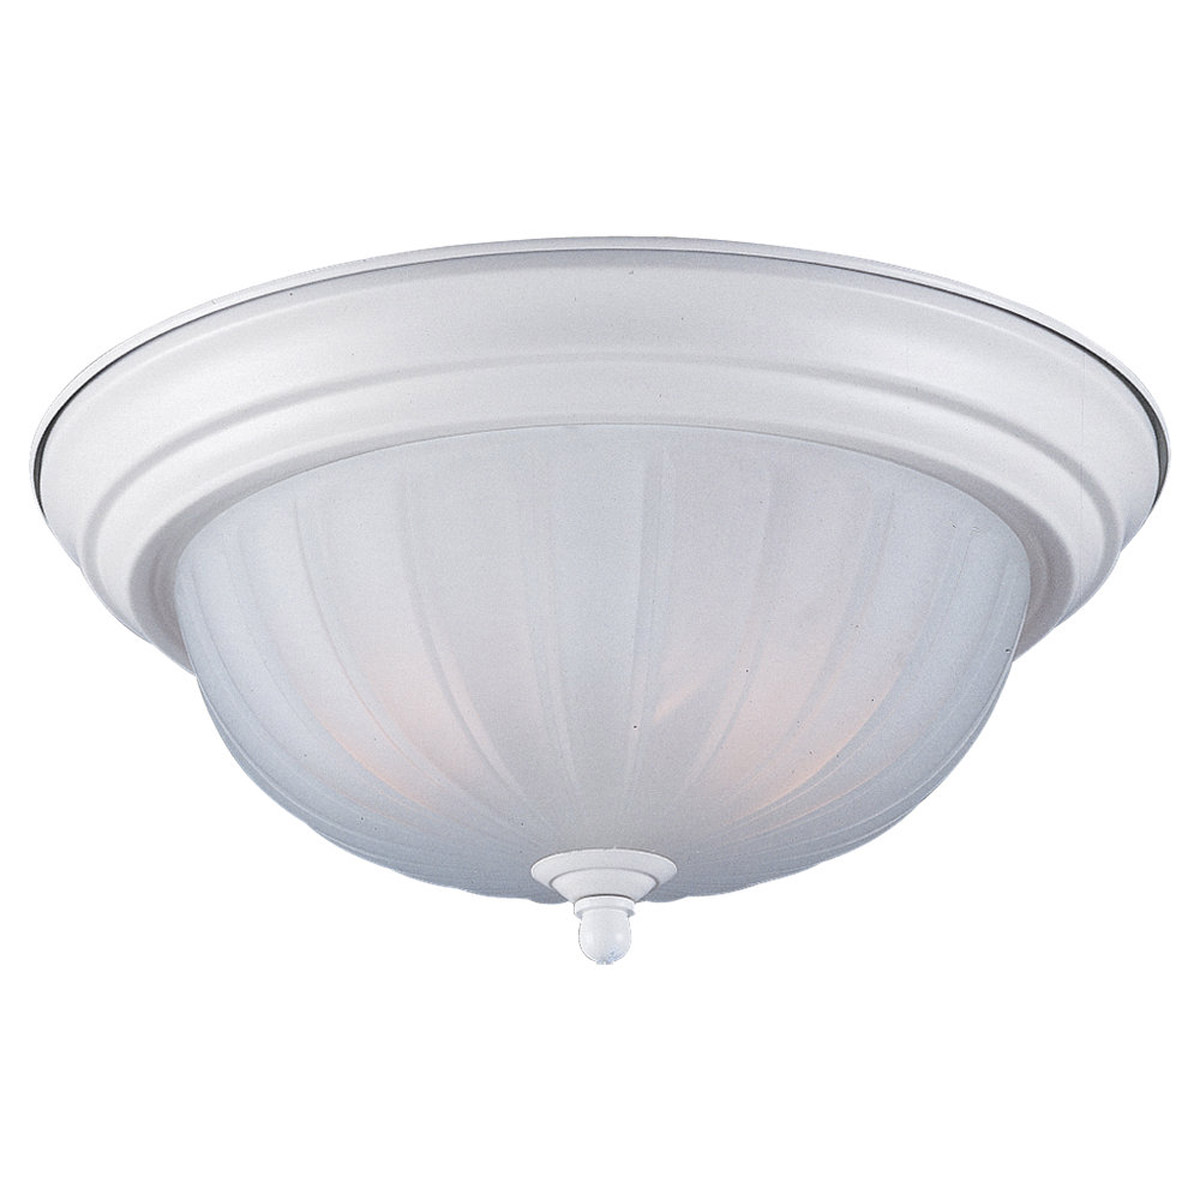 Sea Gull Lighting Floyd 2 Light Flush Mount in White 7505-15